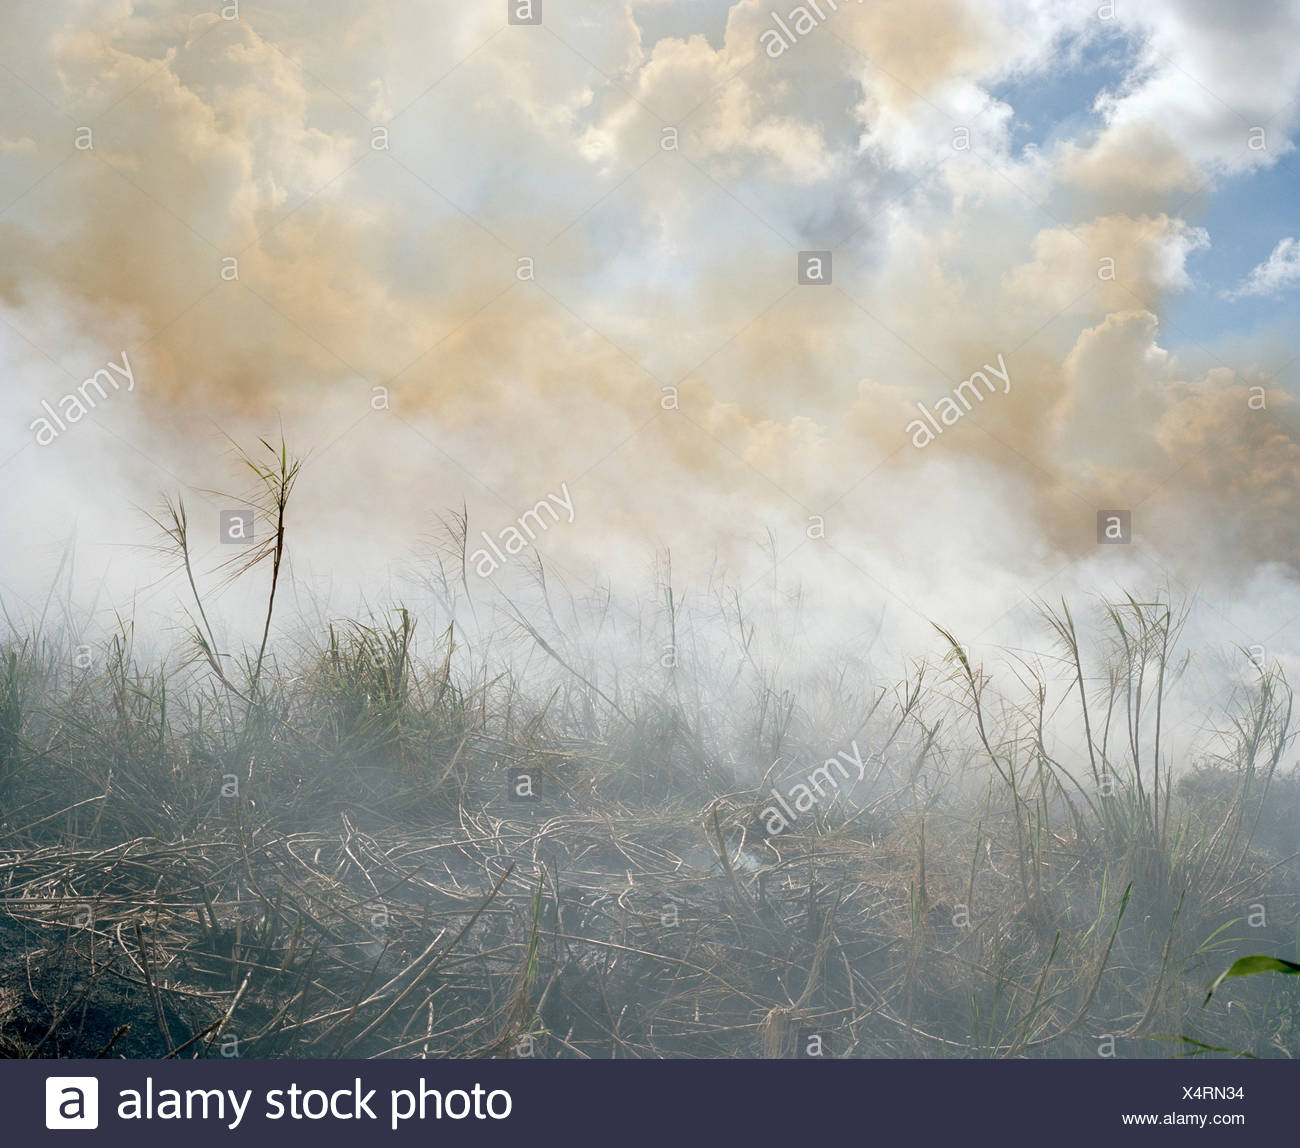 The aftermath of a brush fire - Stock Image